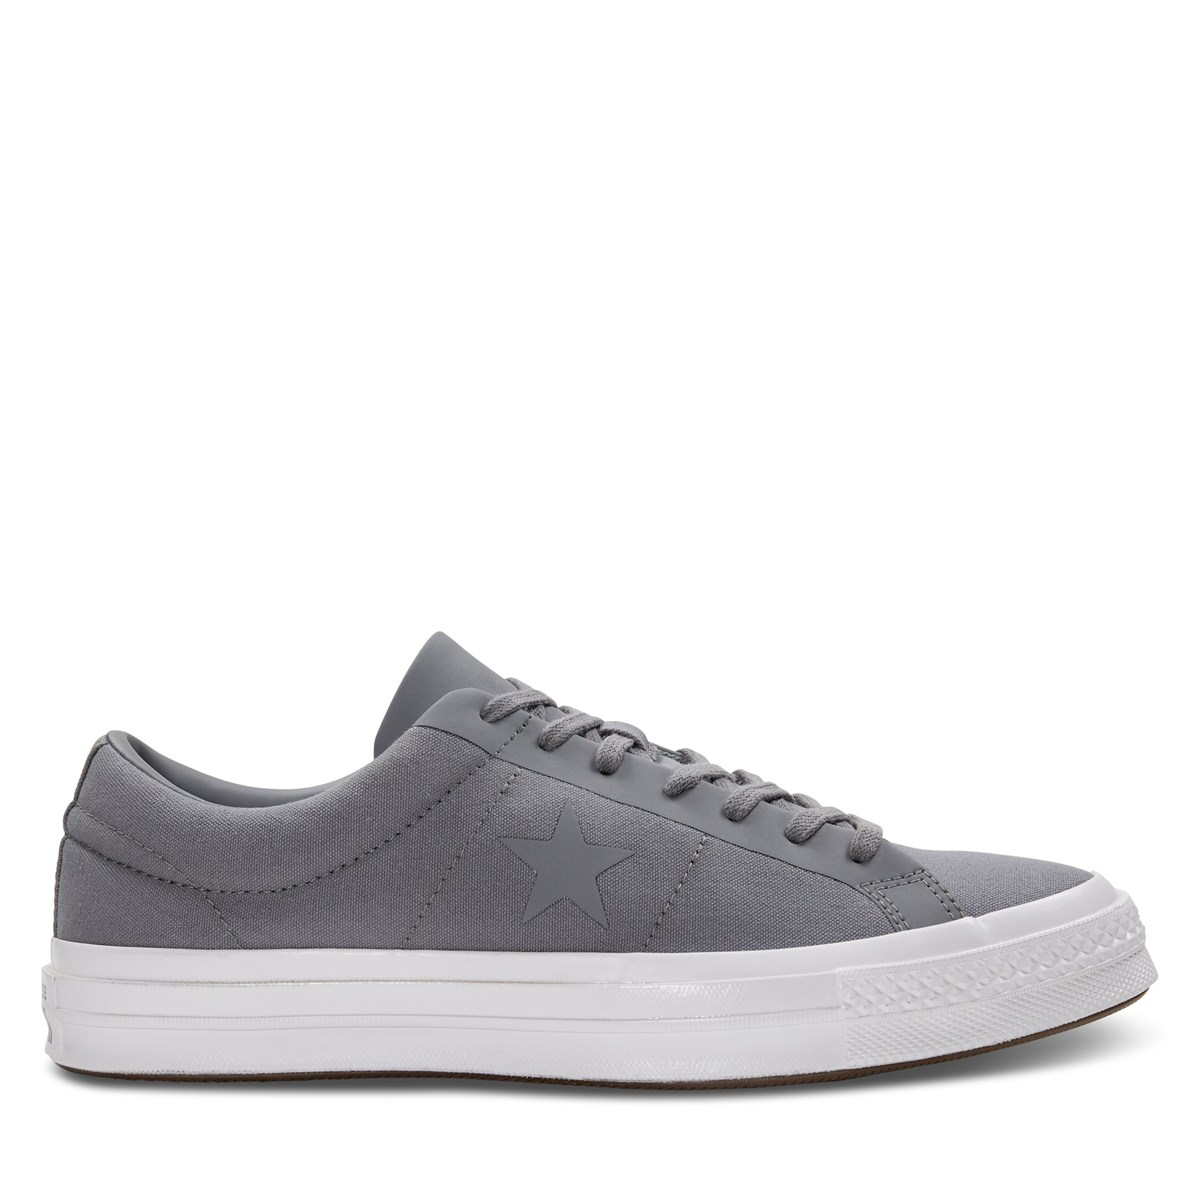 Men's One Star Mason Sneaker in Grey